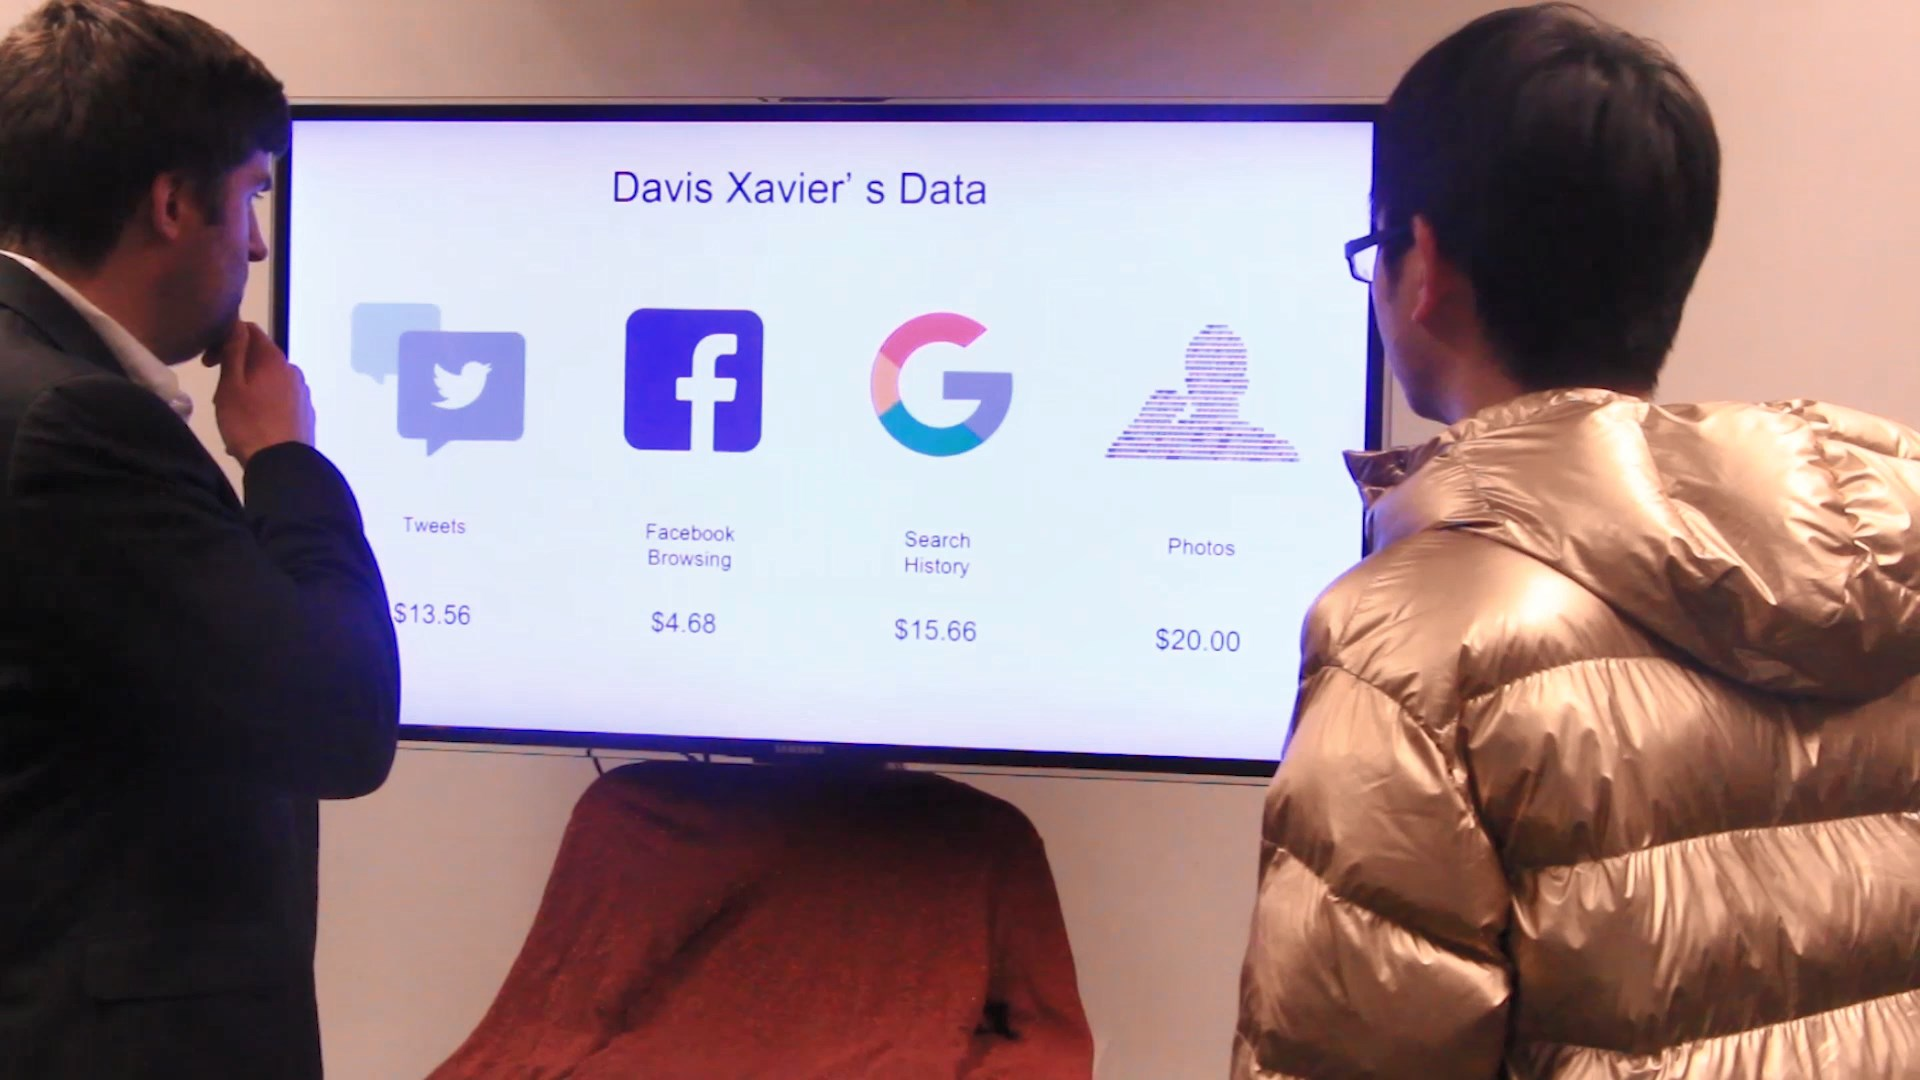 """Show the user a fantasy representation of their data being bought and sold. - This should force the user to confront this issue in a more """"real"""" way. The user will have to grapple with their own sense of powerlessness about the situation."""